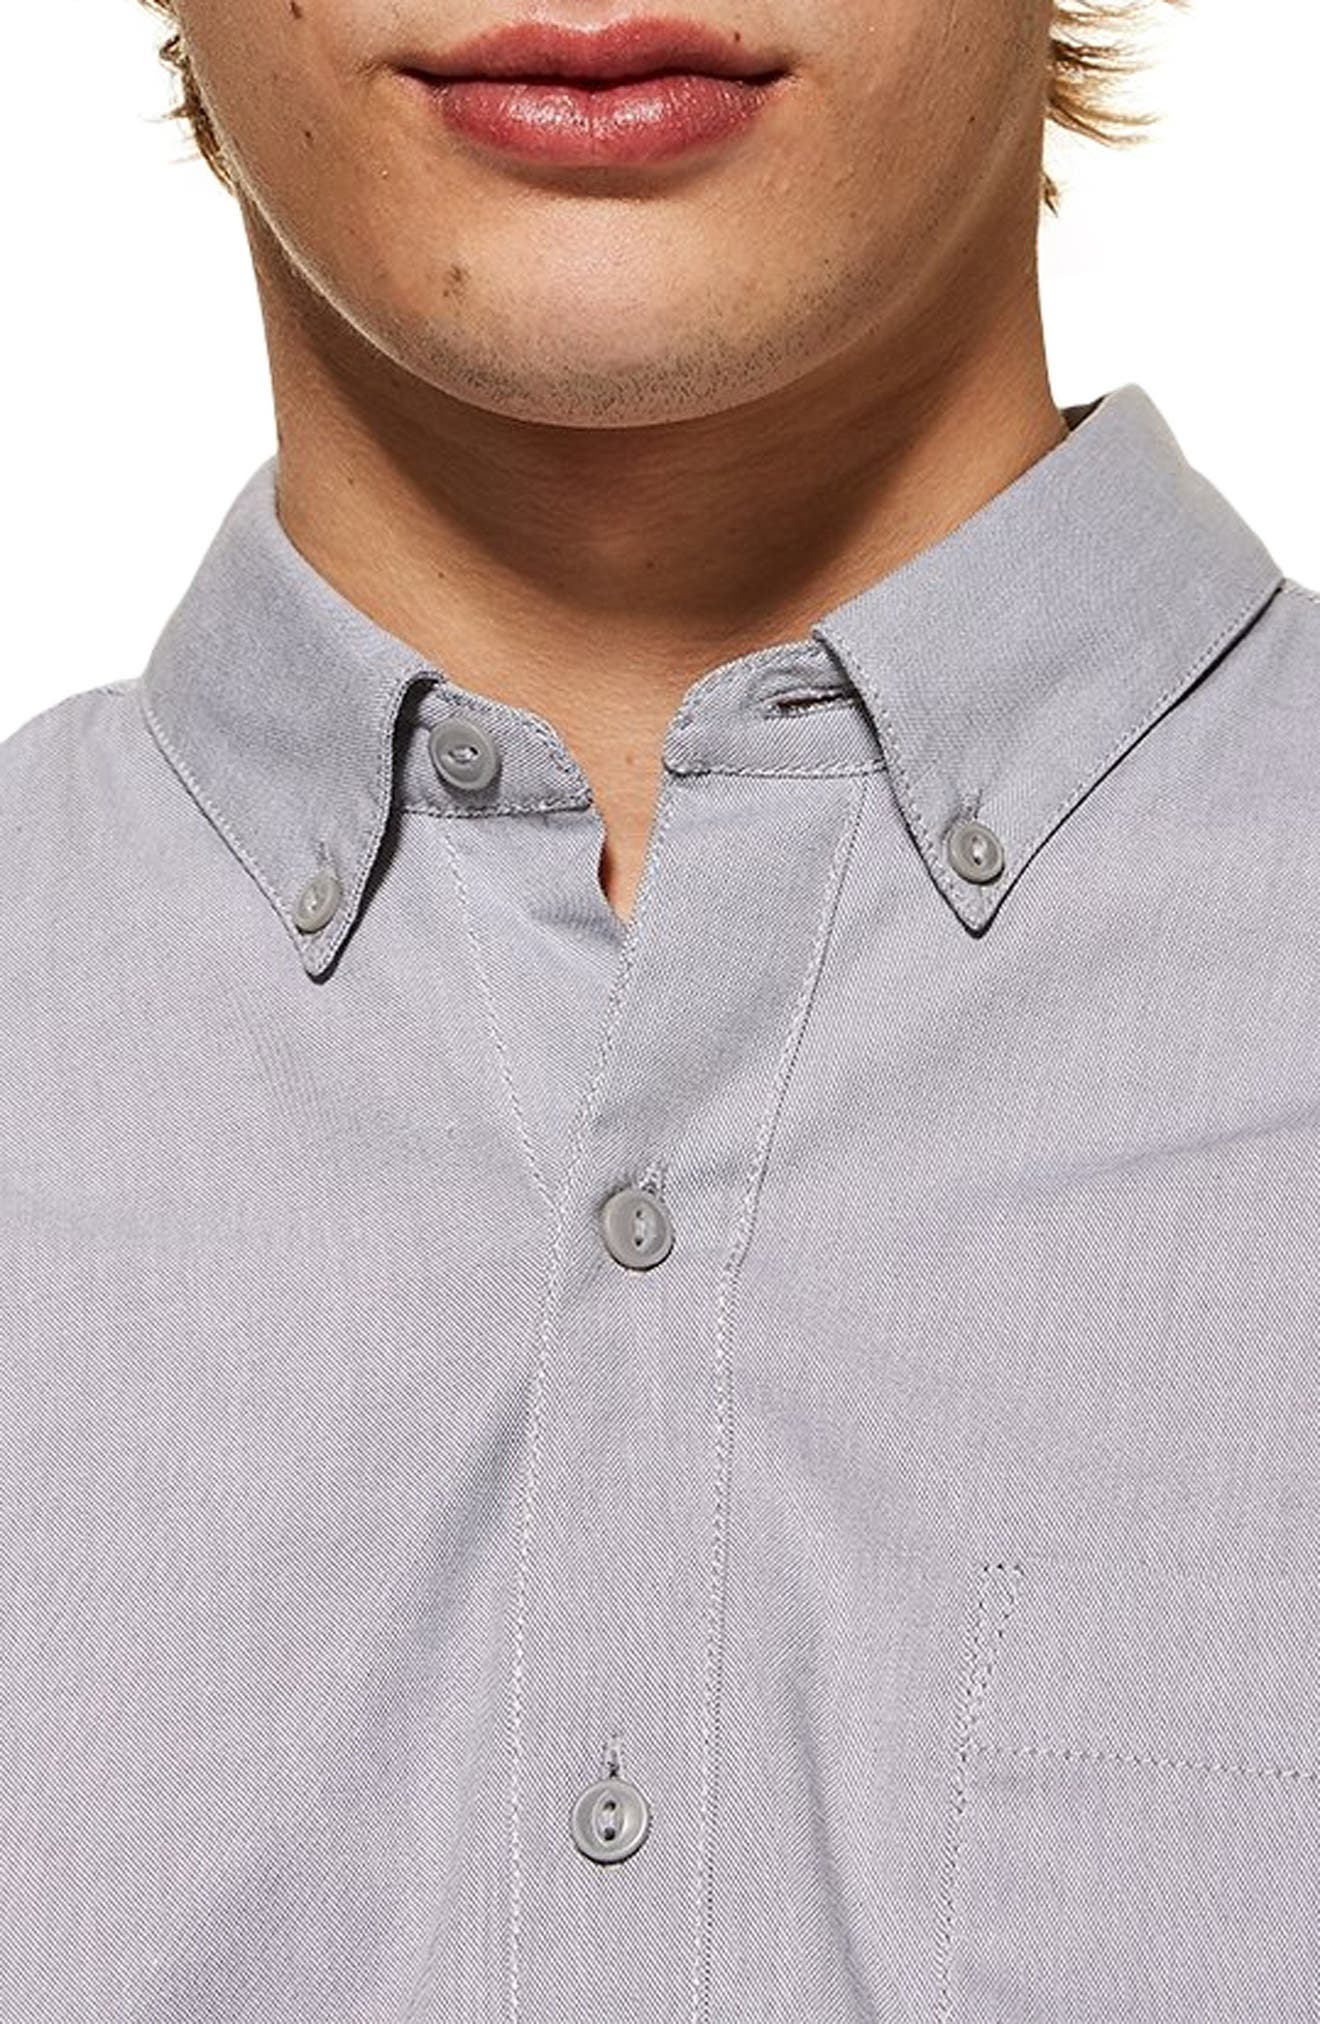 TOPMAN,                             Muscle Fit Oxford Shirt,                             Alternate thumbnail 2, color,                             GREY